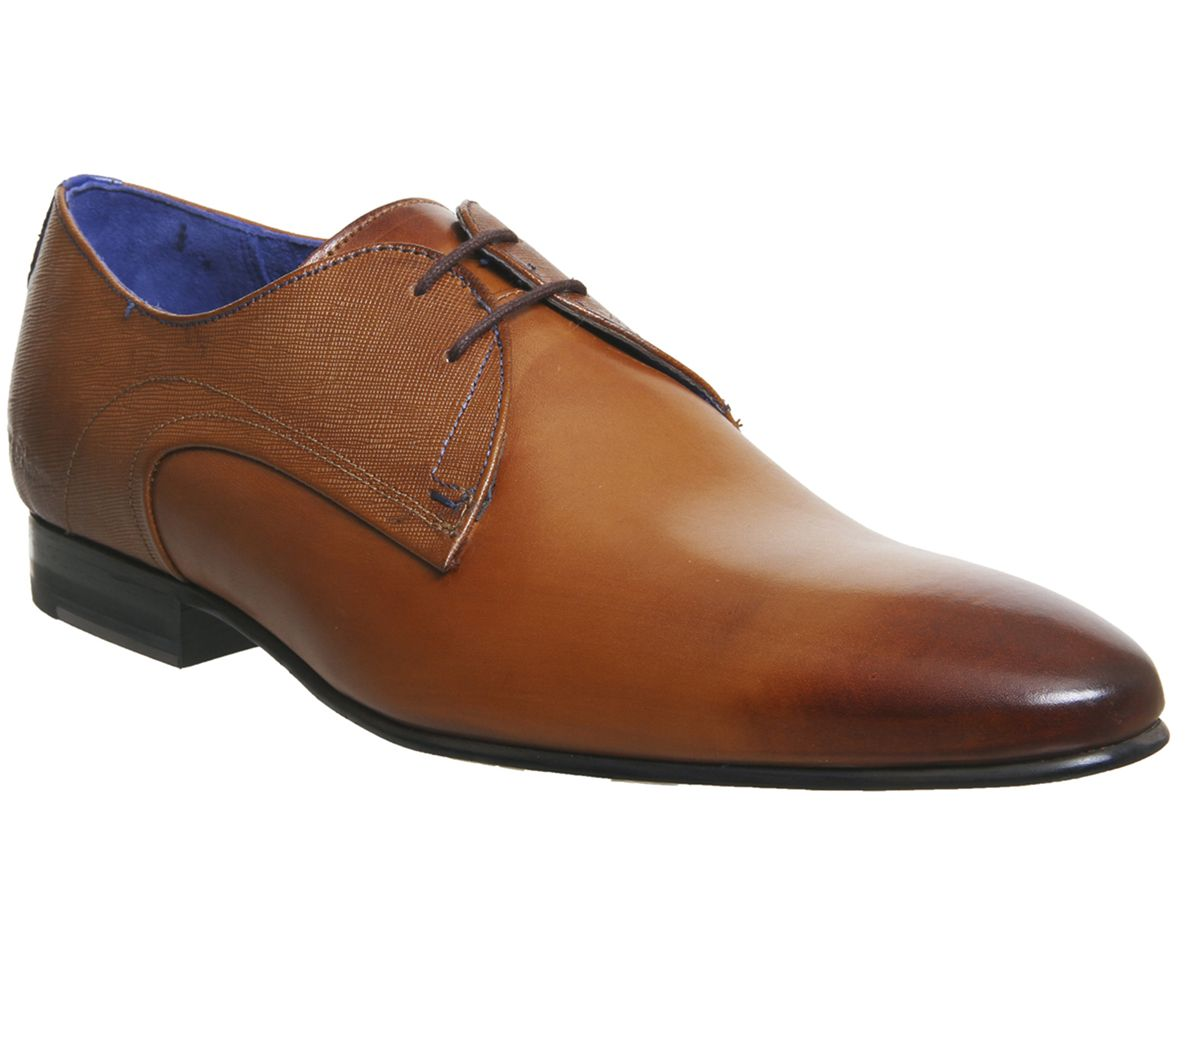 583f3e459 Ted Baker Peair Lace Up Shoes Tan Leather - Smart